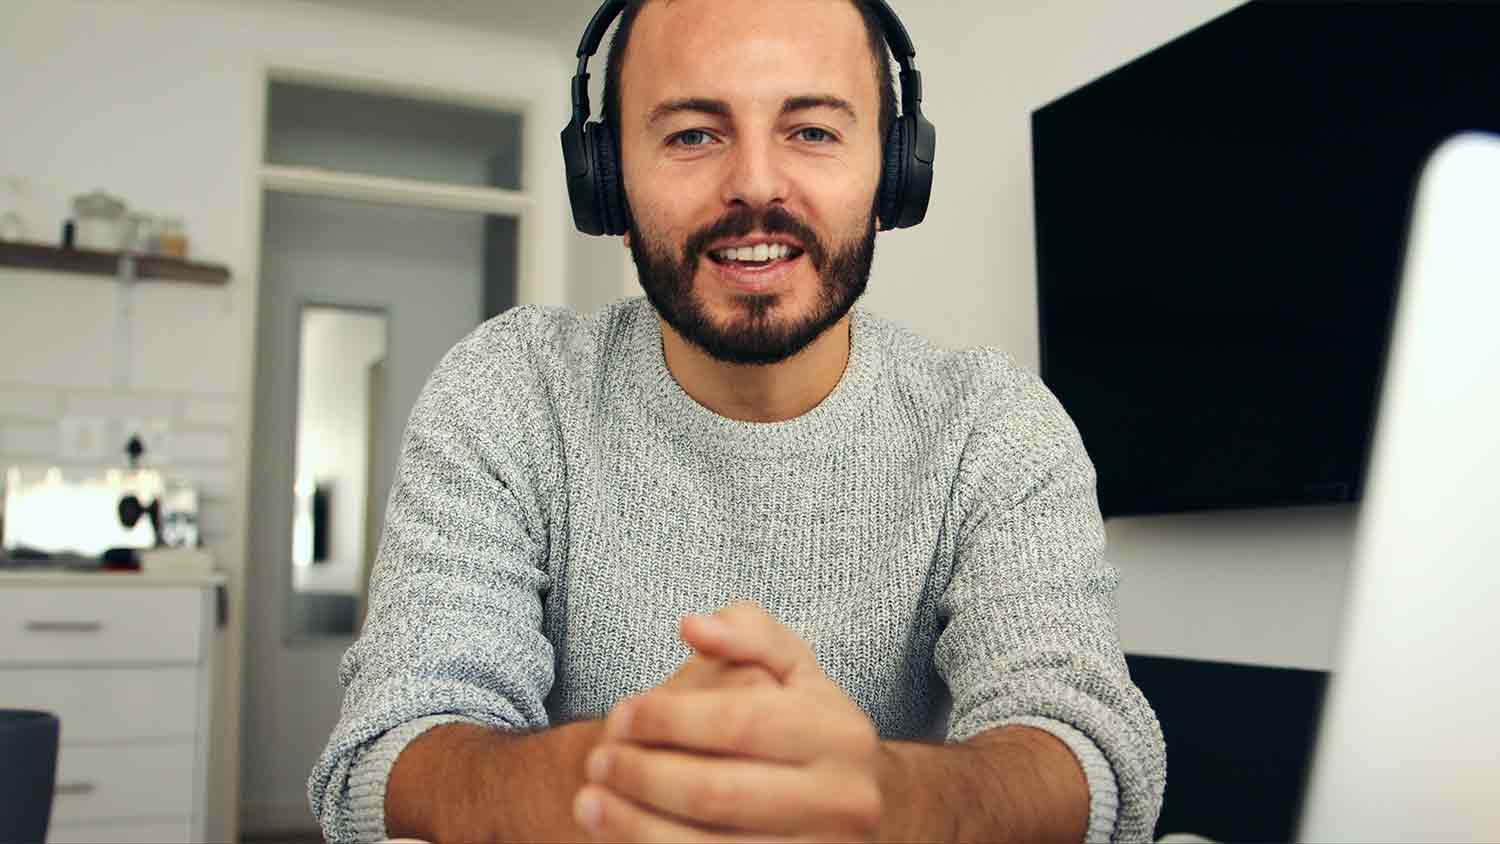 A bearded man looking at the camera whilst wearing headphones